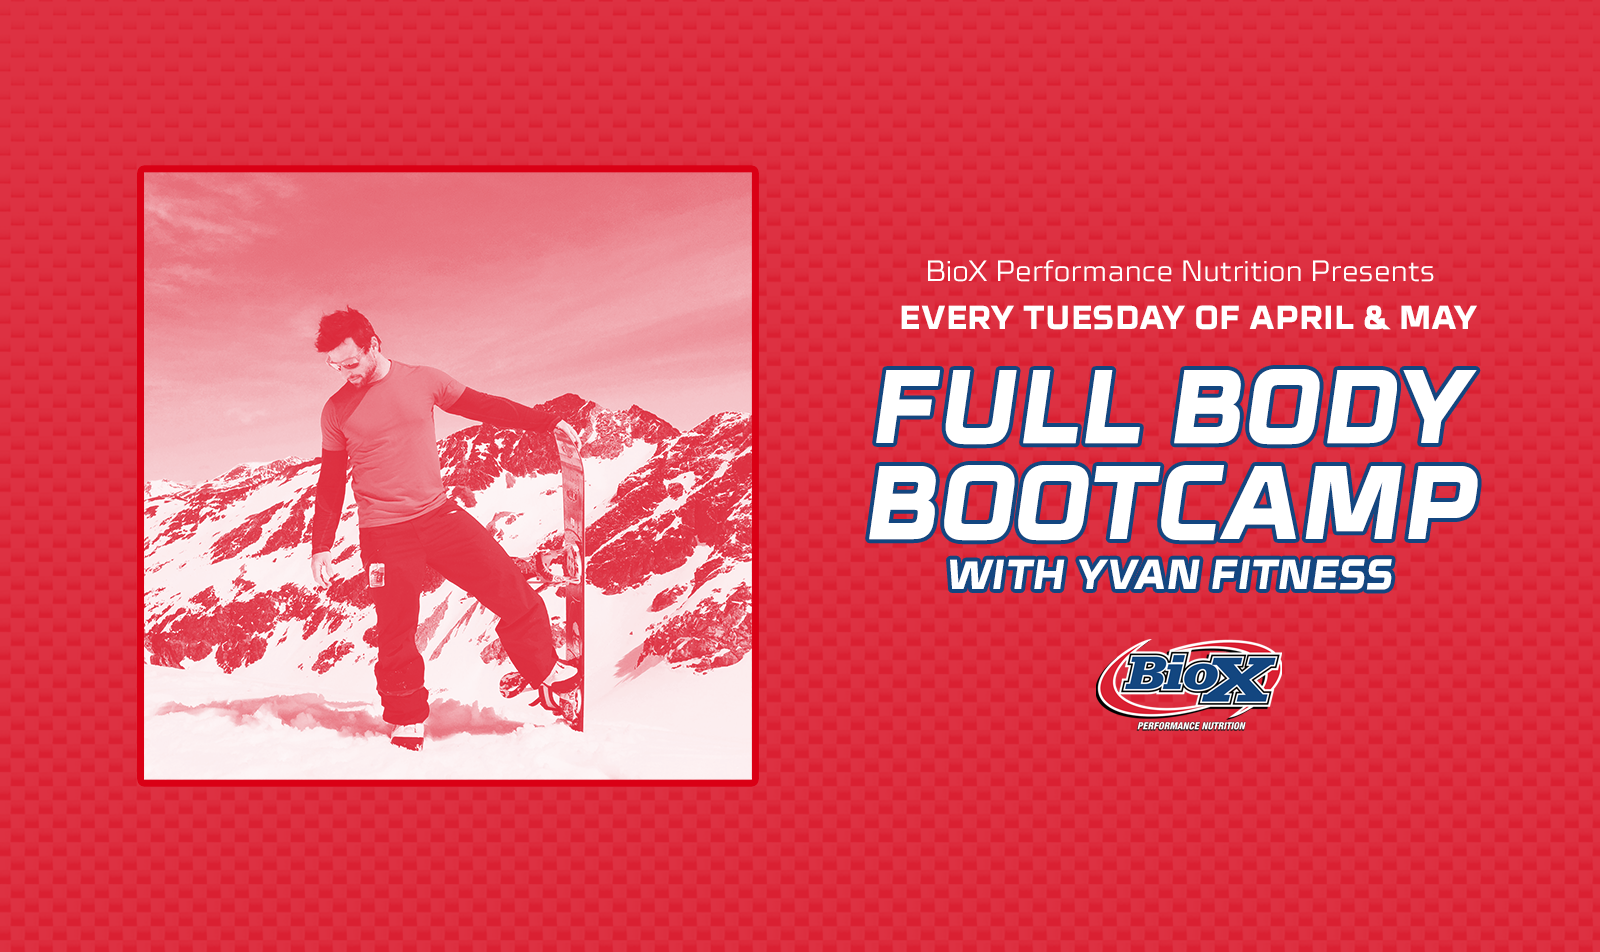 Full Body Bootcamp with Yvan Fitness